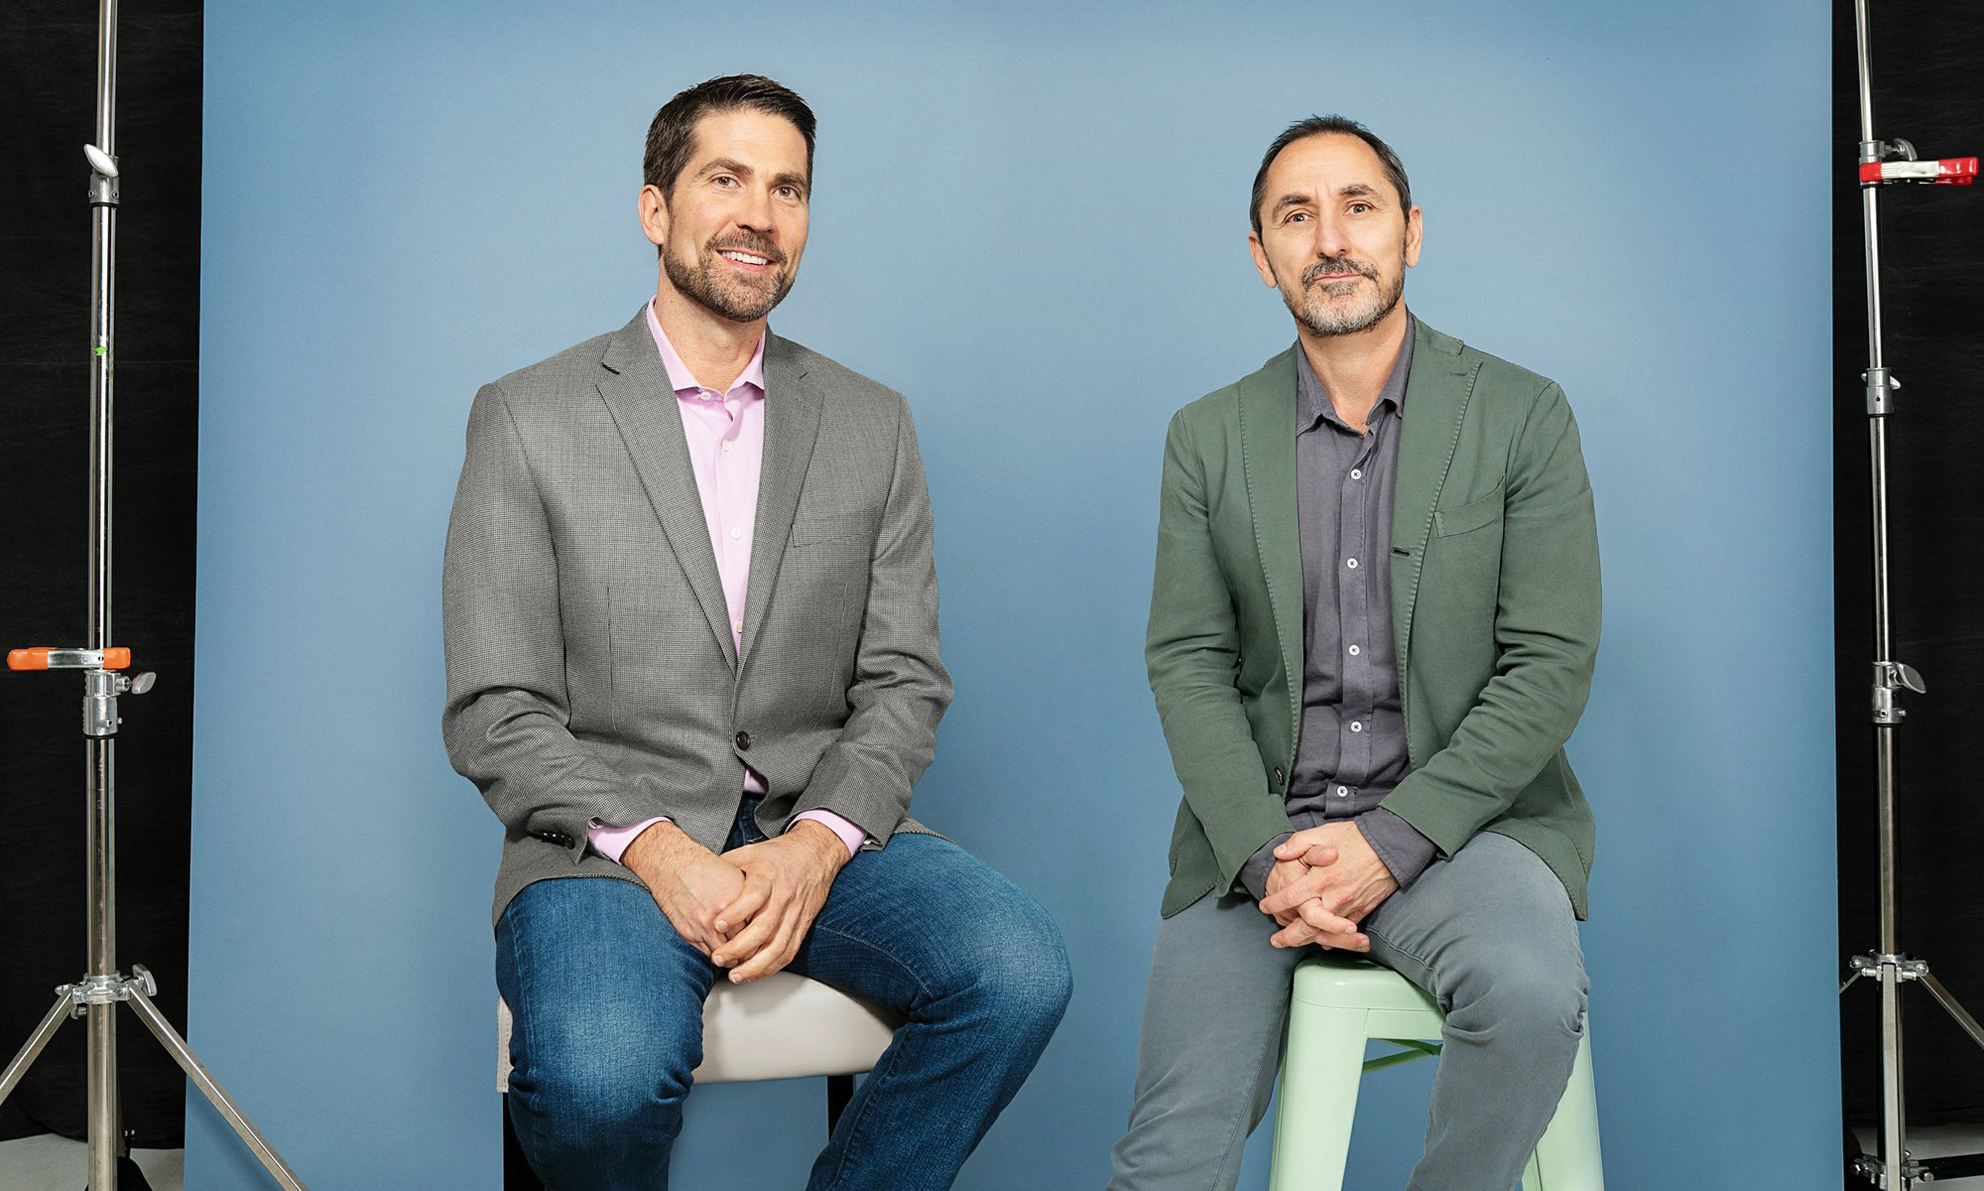 Accenture Interactive Acquires Droga5 in undisclosed mega deal; Aussie expat David Droga will remain in his role as creative chairman